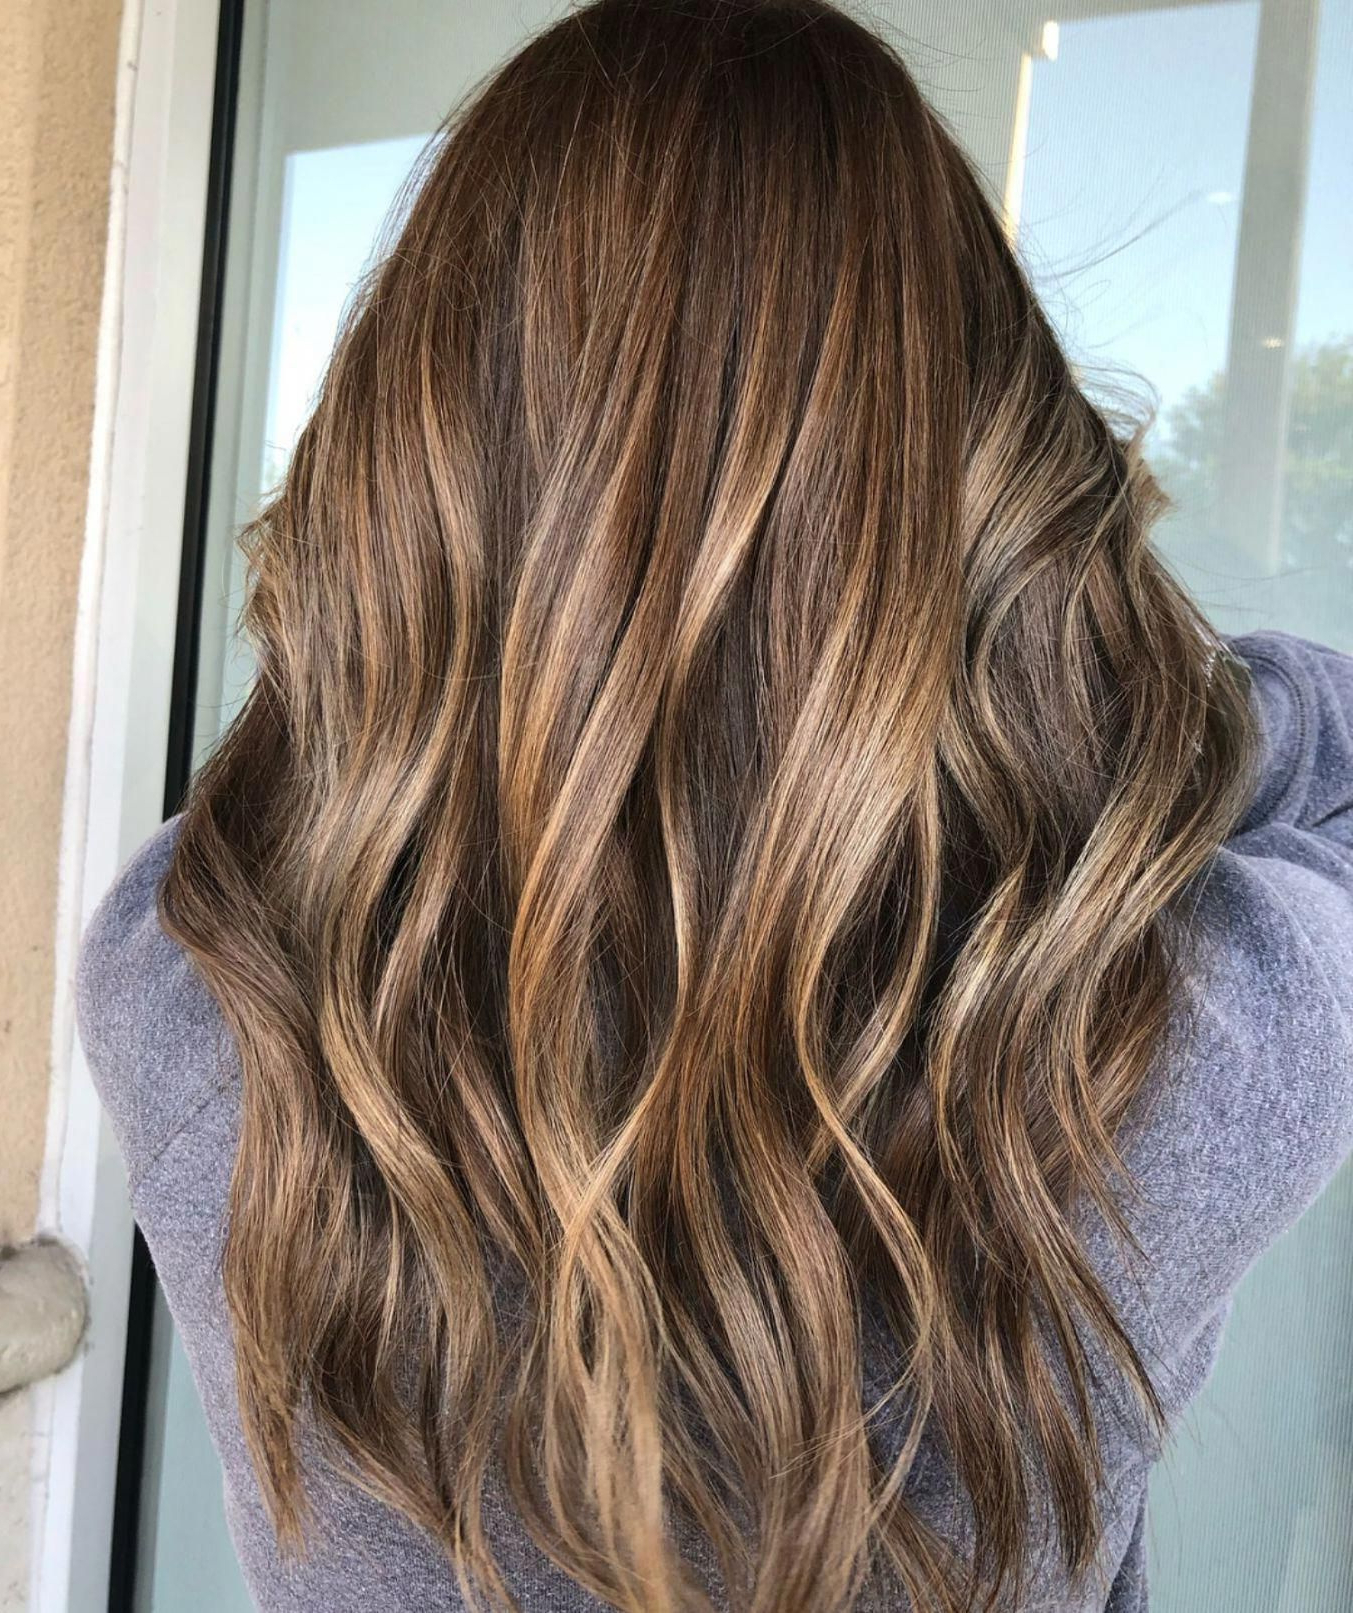 Hairstyles : Dark Brown To Light Brown Ombre Medium Hair Scenic With Regard To Popular Layered Ombre For Long Hairstyles (View 15 of 20)